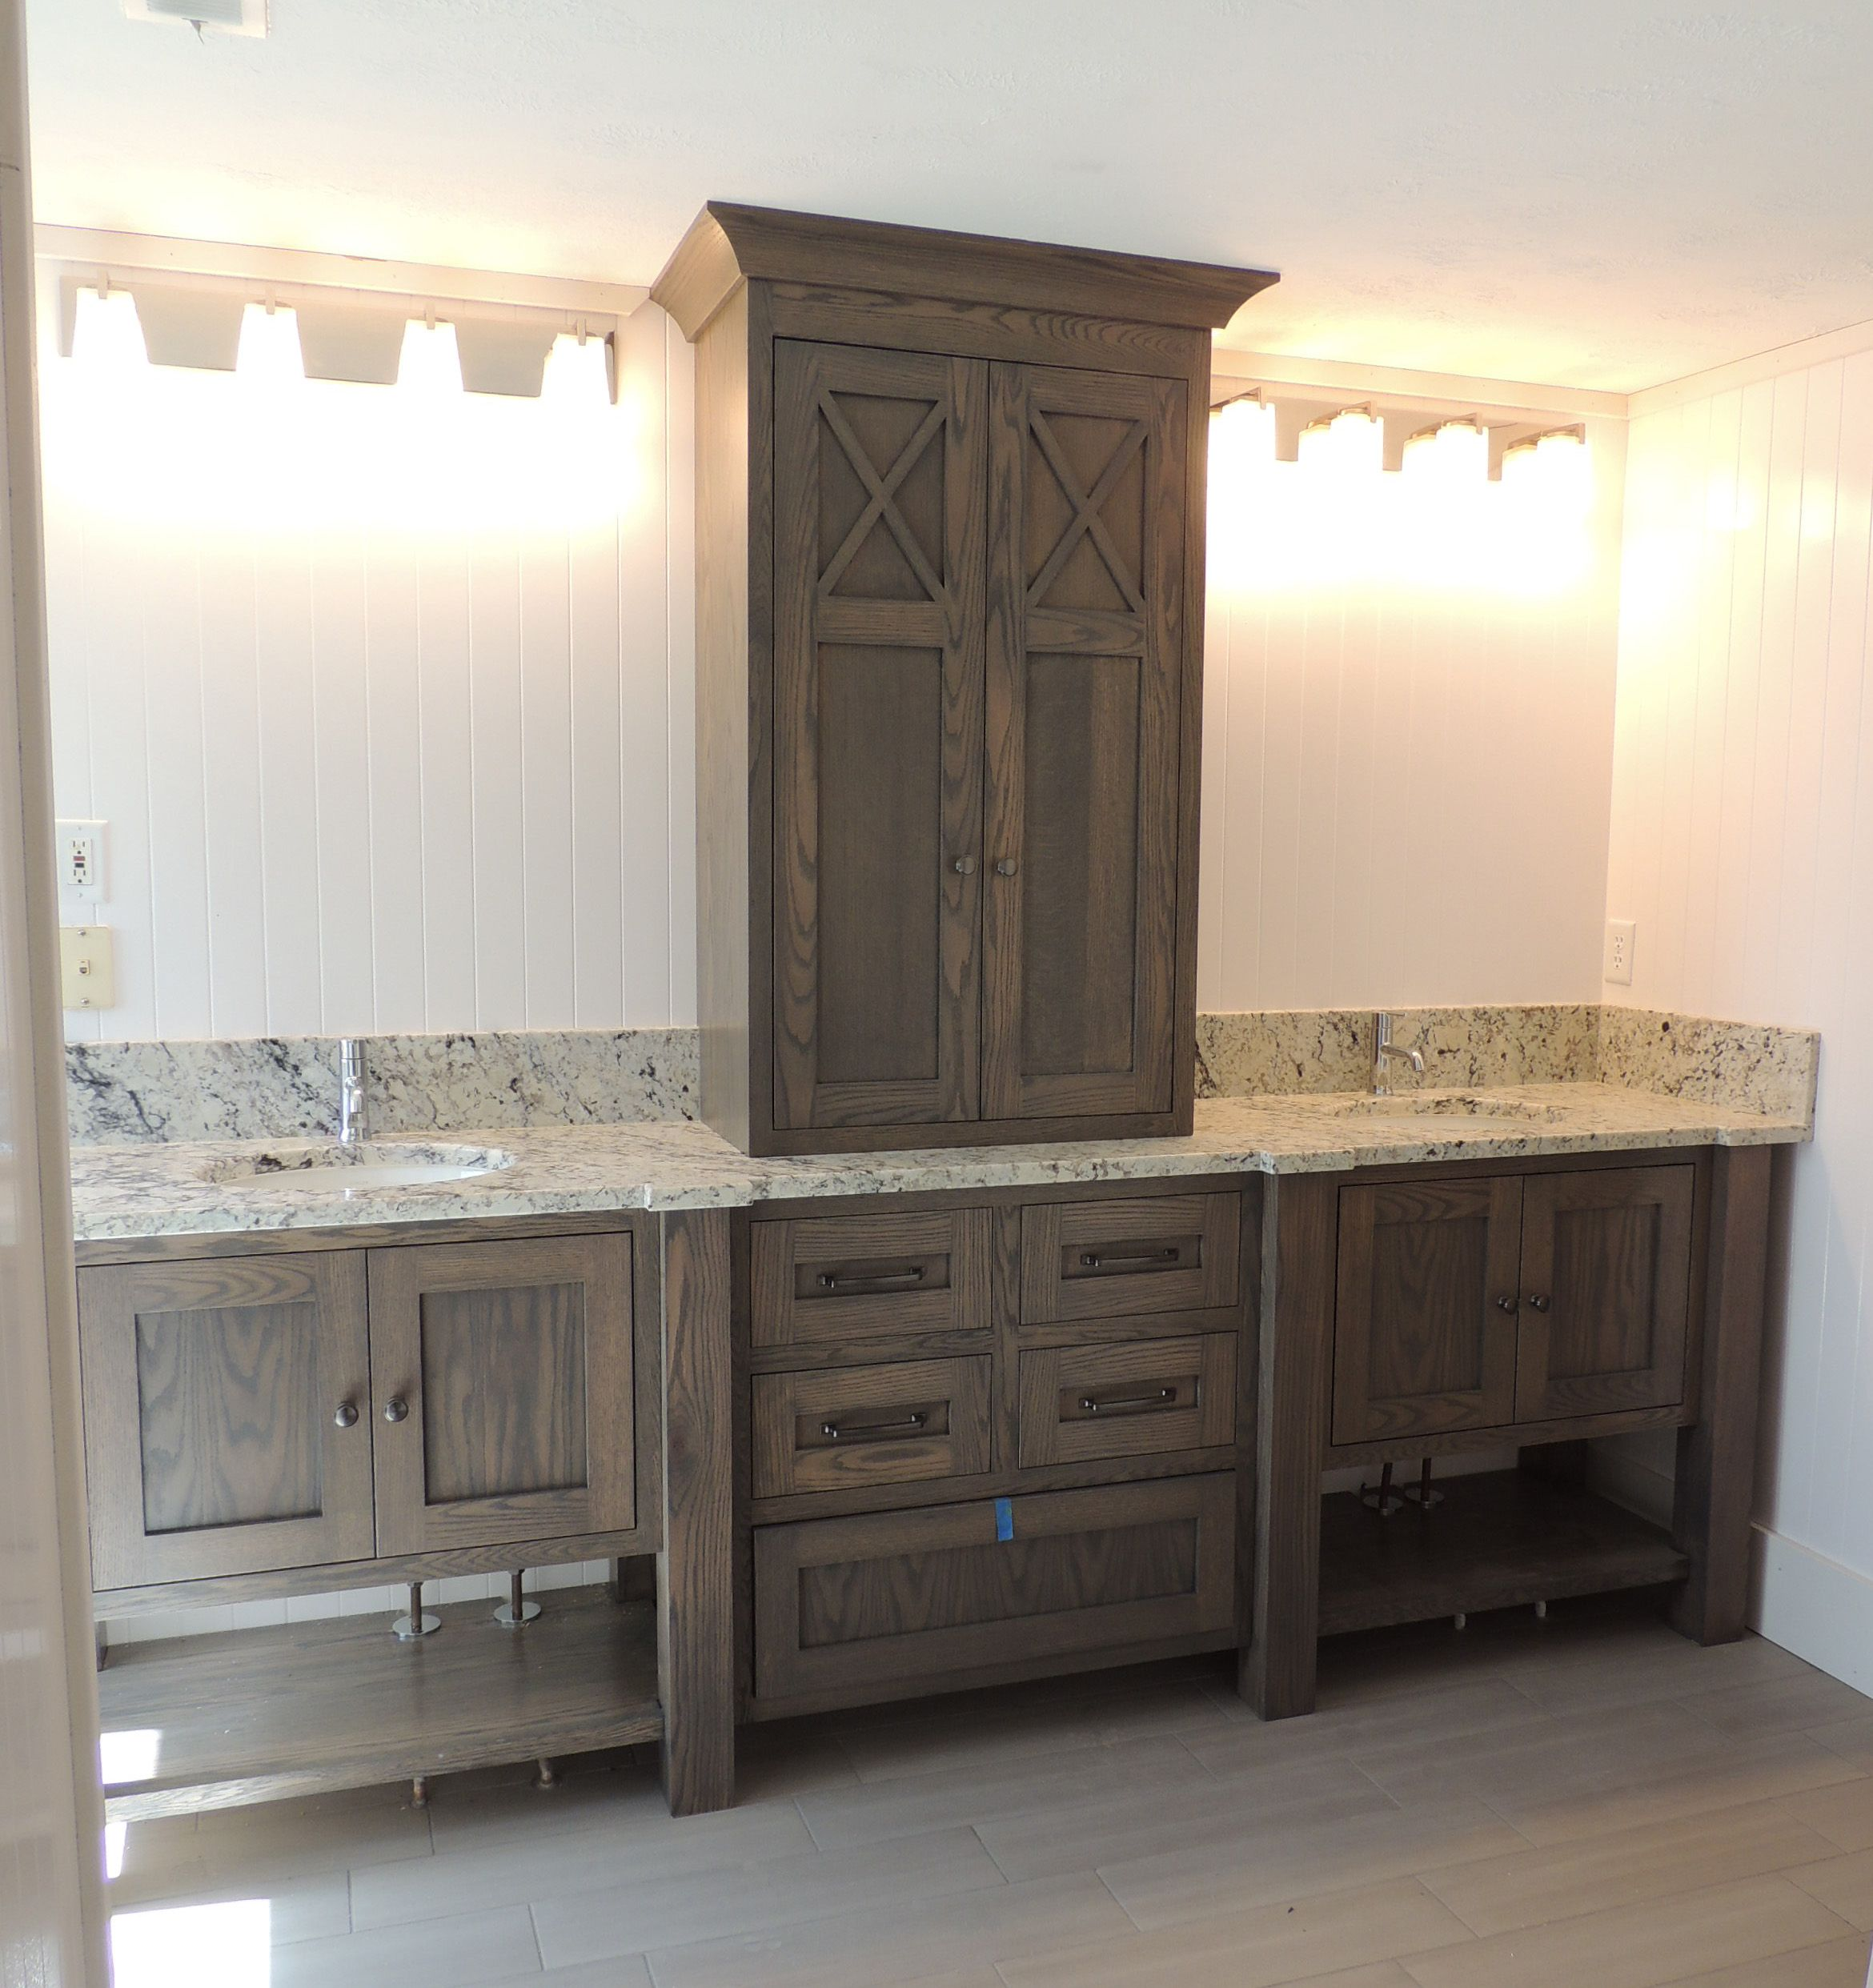 Brown Oak Kitchen Cabinets: Furniture Style Bathroom Vanity In White Oak With Grey